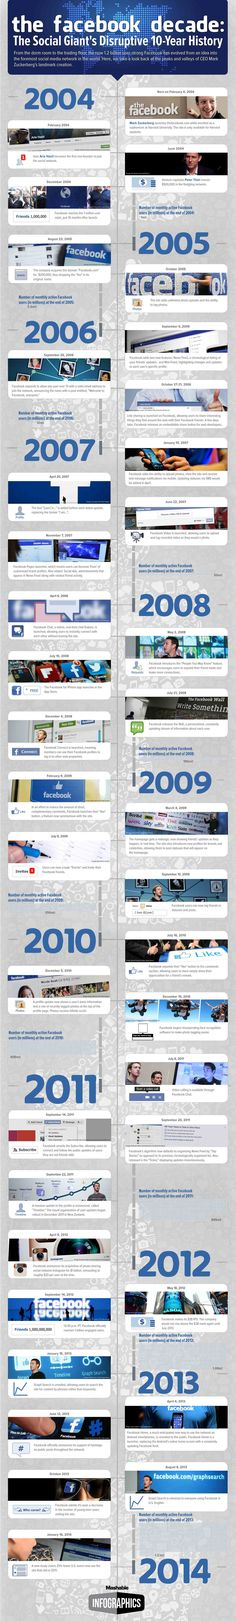 Facebook Decade: The Social Giant's Disruptive 10-Year History    #Infographic #Facebook #SM